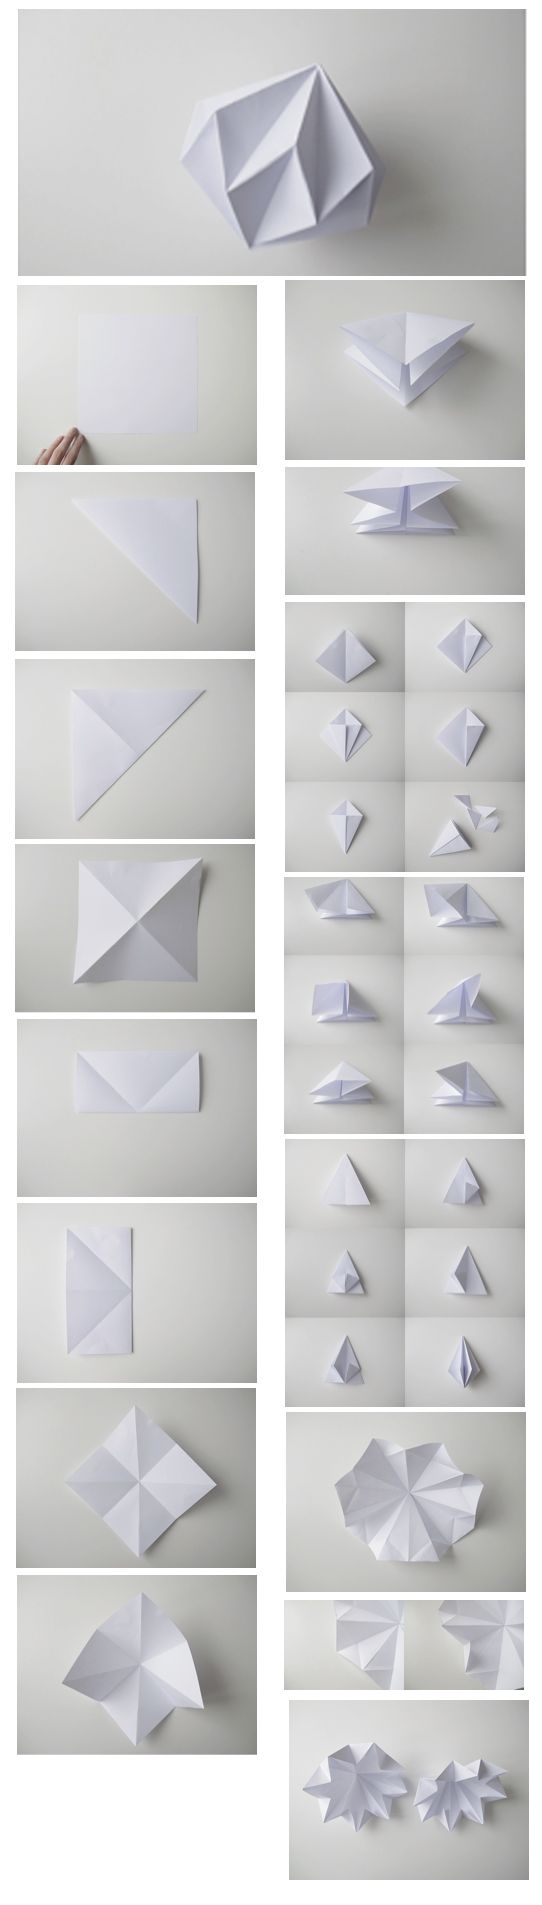 DIY Origami Diamond Step-by-Step Tutorial